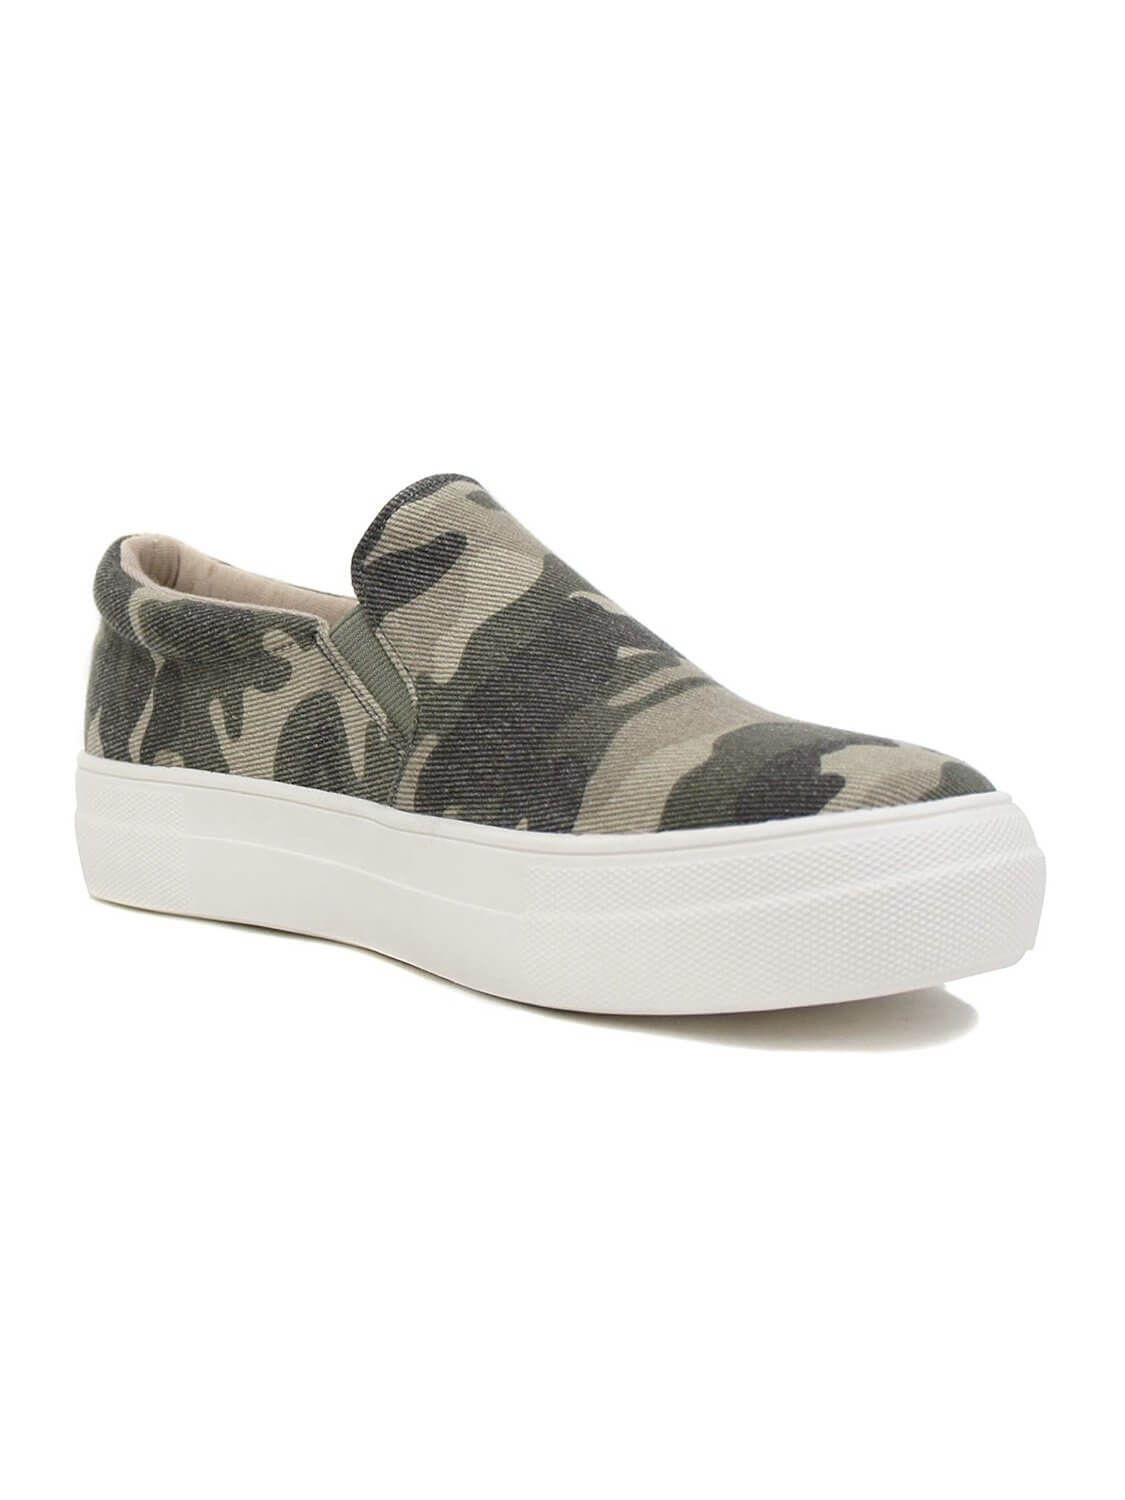 "Camouflage slip-on sneakers with rubber sole and 1.5 ""high heel"